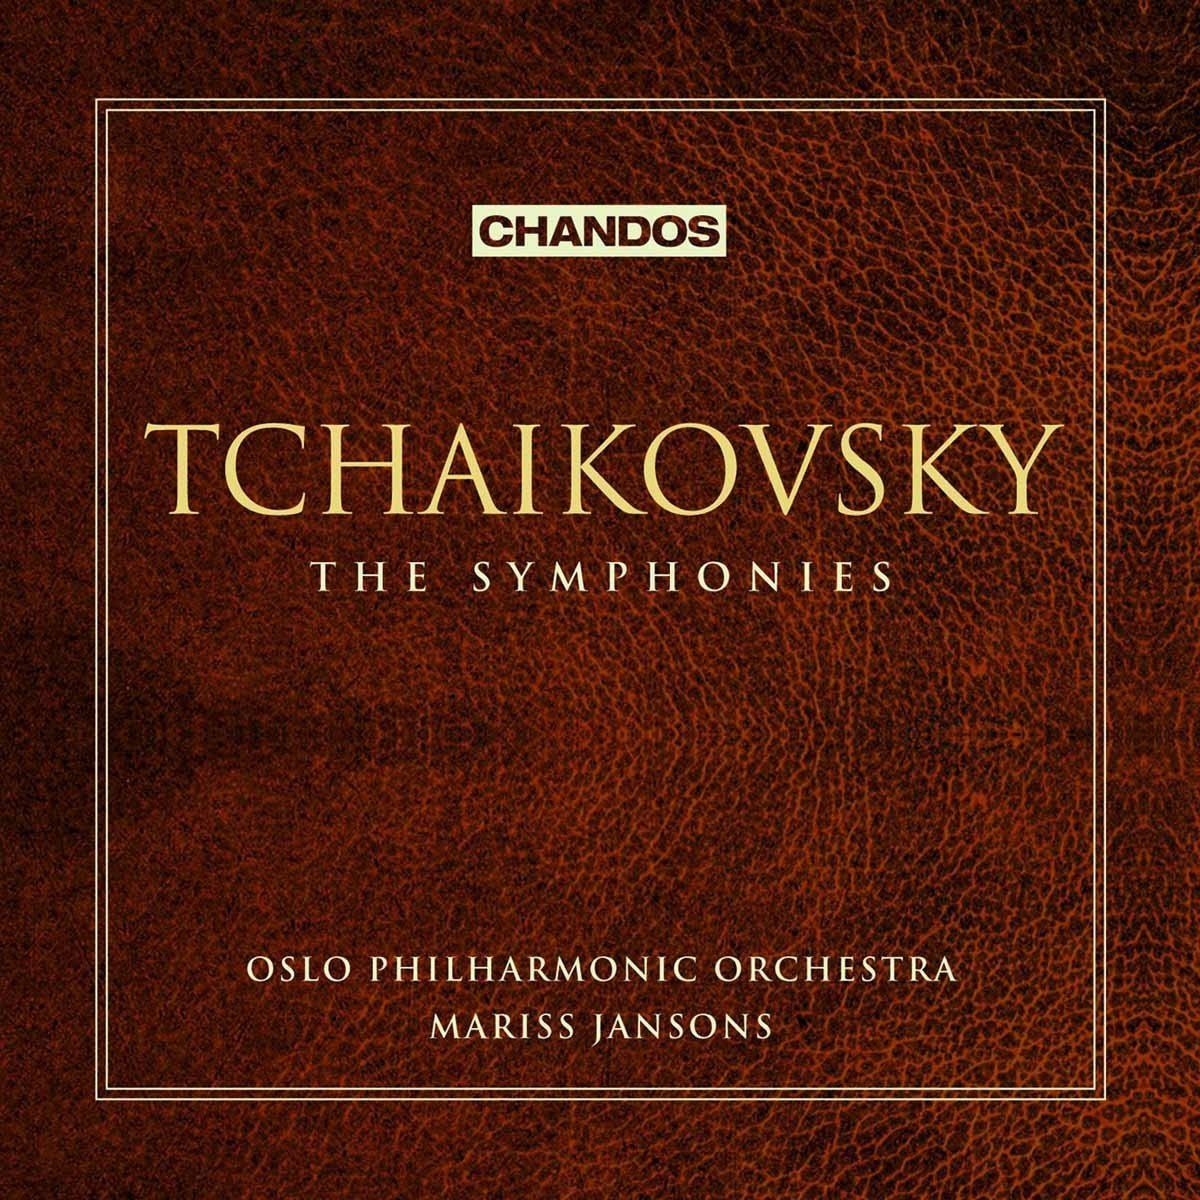 Tchaikovsky: The Symphonies by Chandos